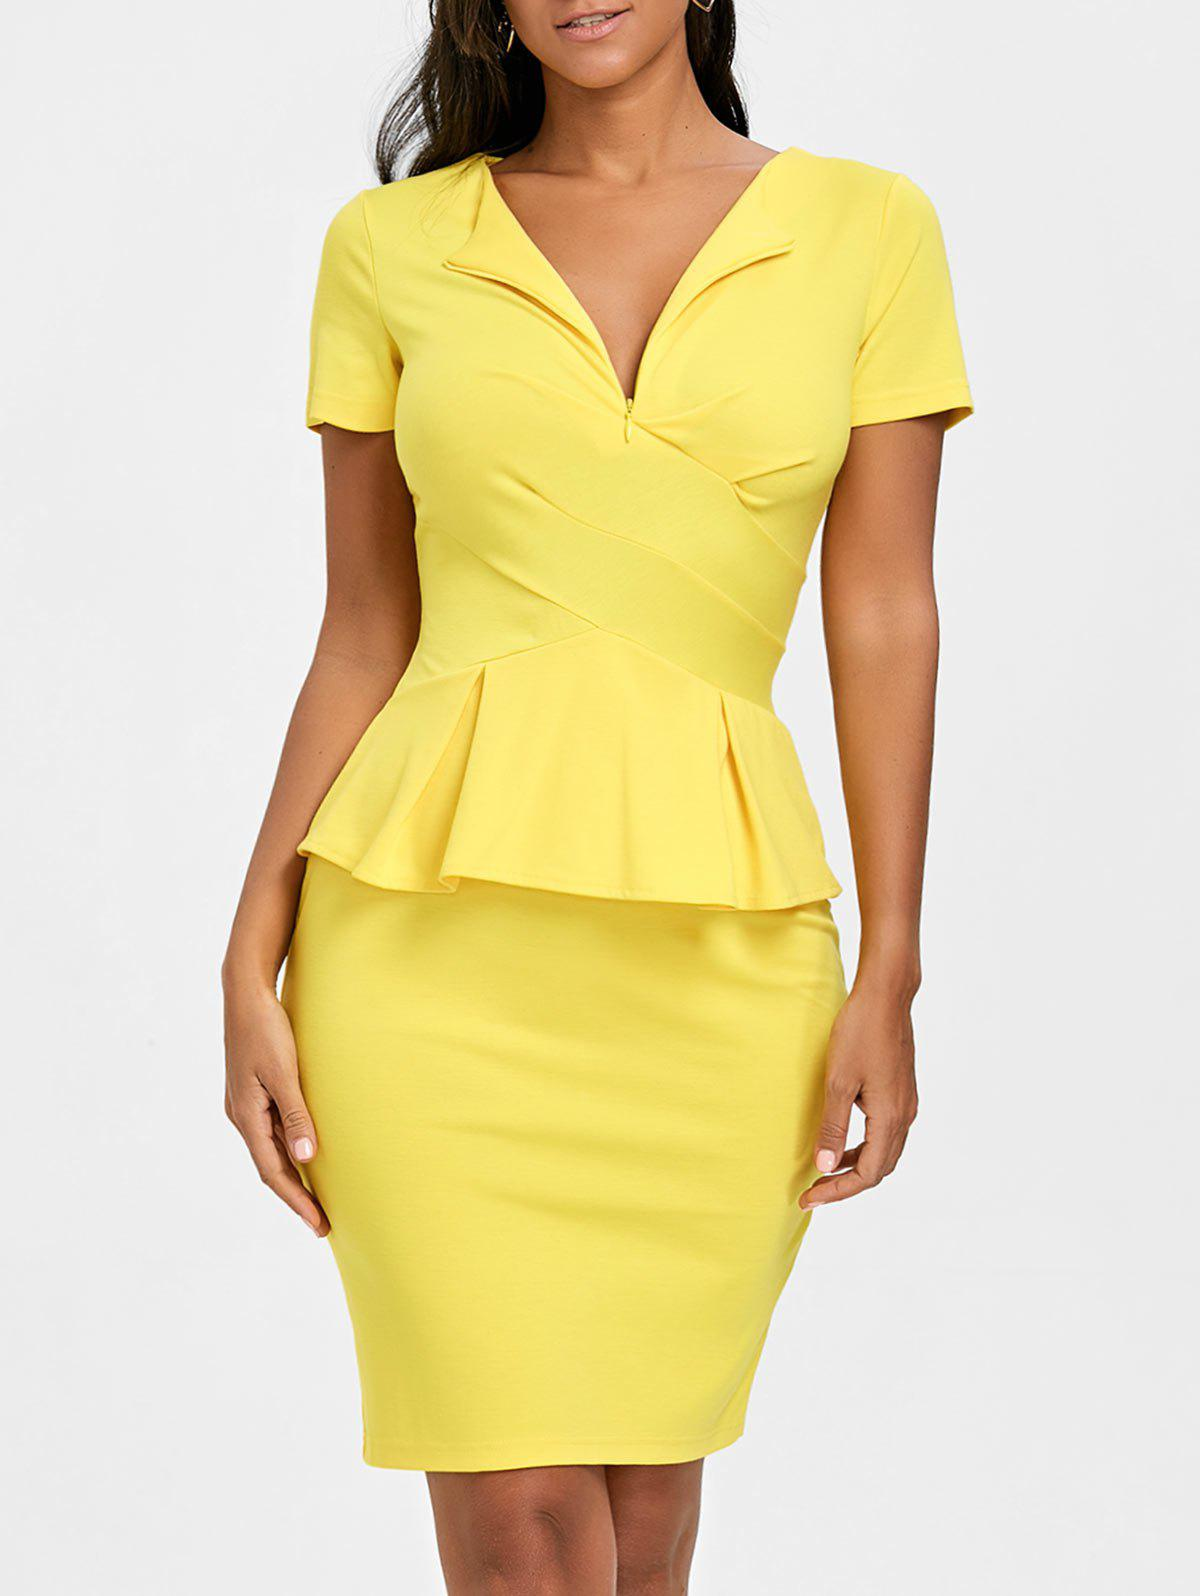 Bodycon Peplum Dress -